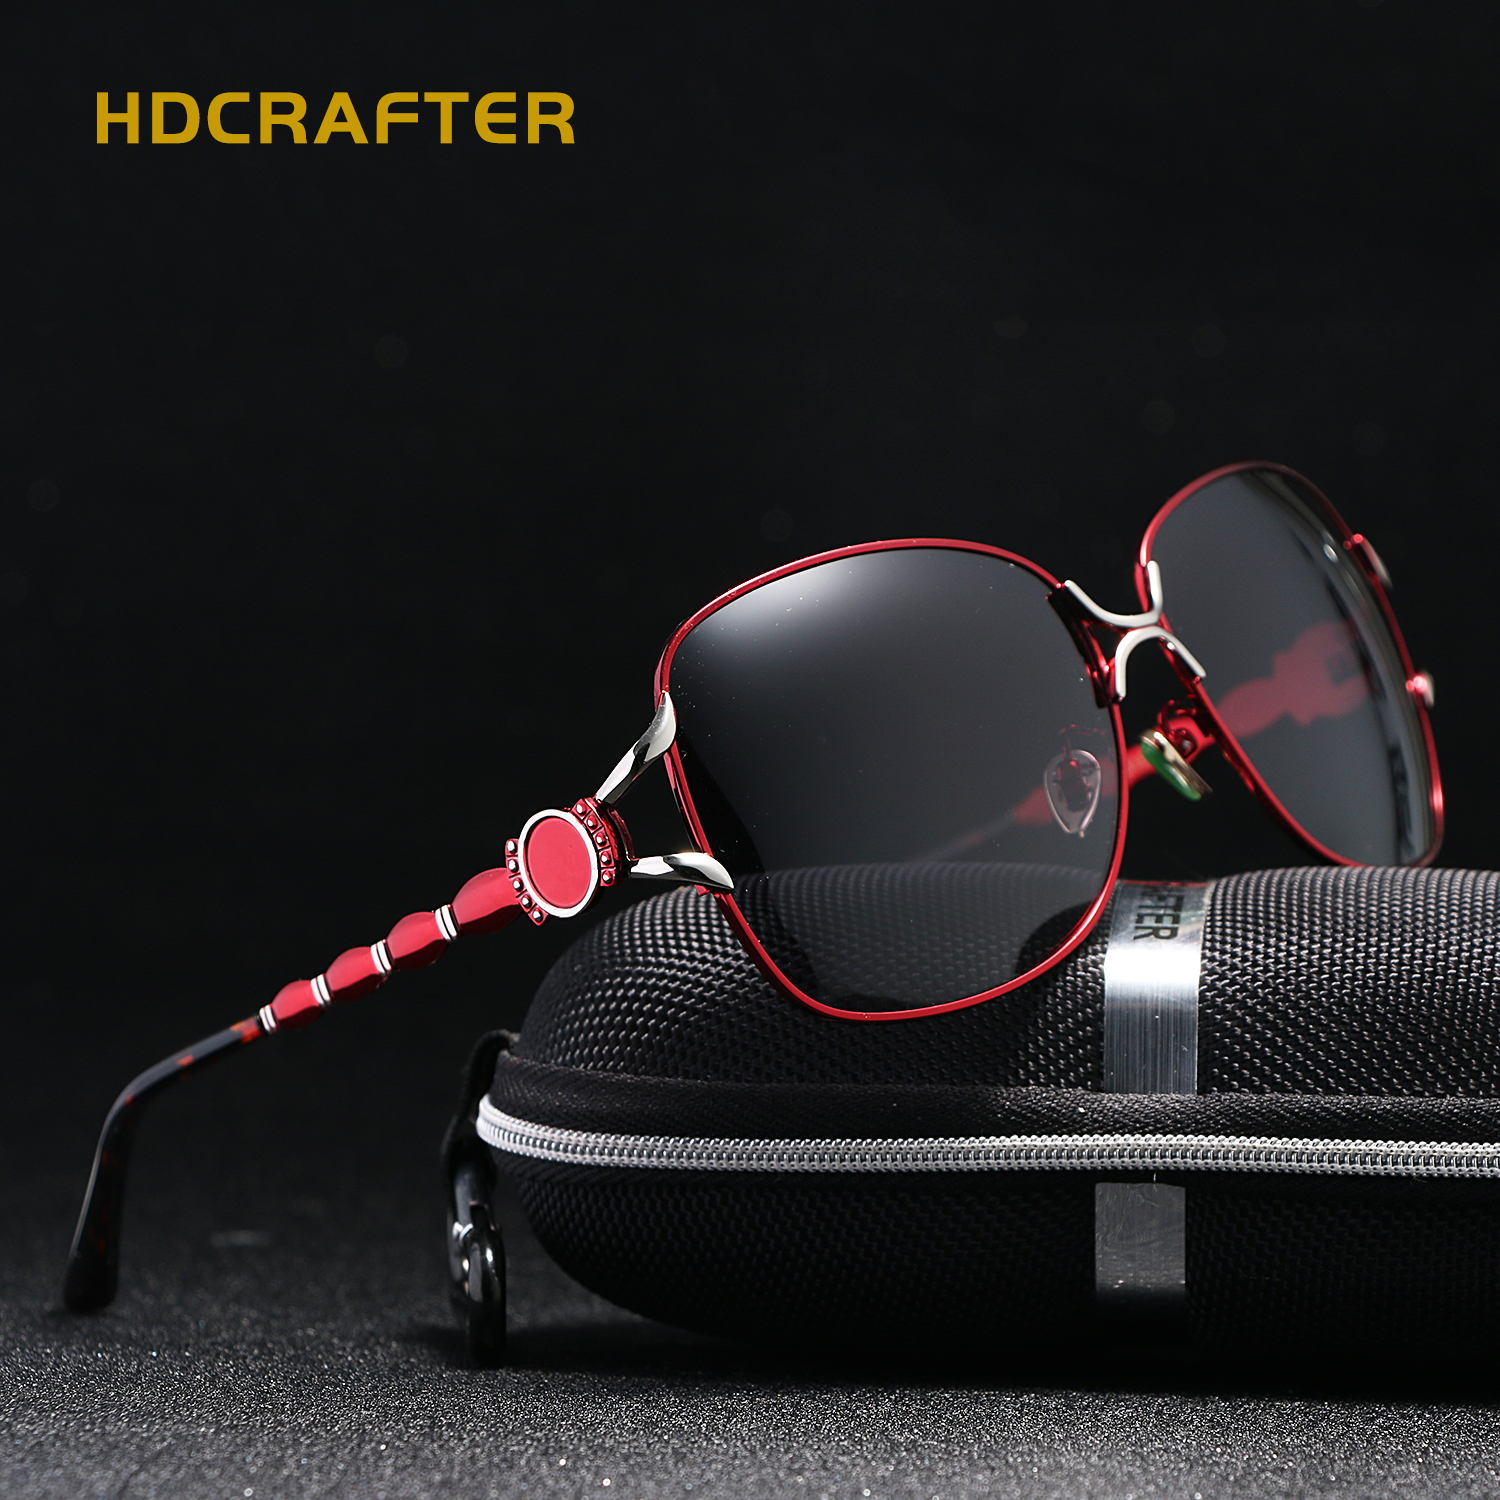 HDCRAFTER 2017 Luxury Brand Sunglasses Female Oversized Red Polarized Sun Glasses for Women Driving Ladies gafas de sol mujer